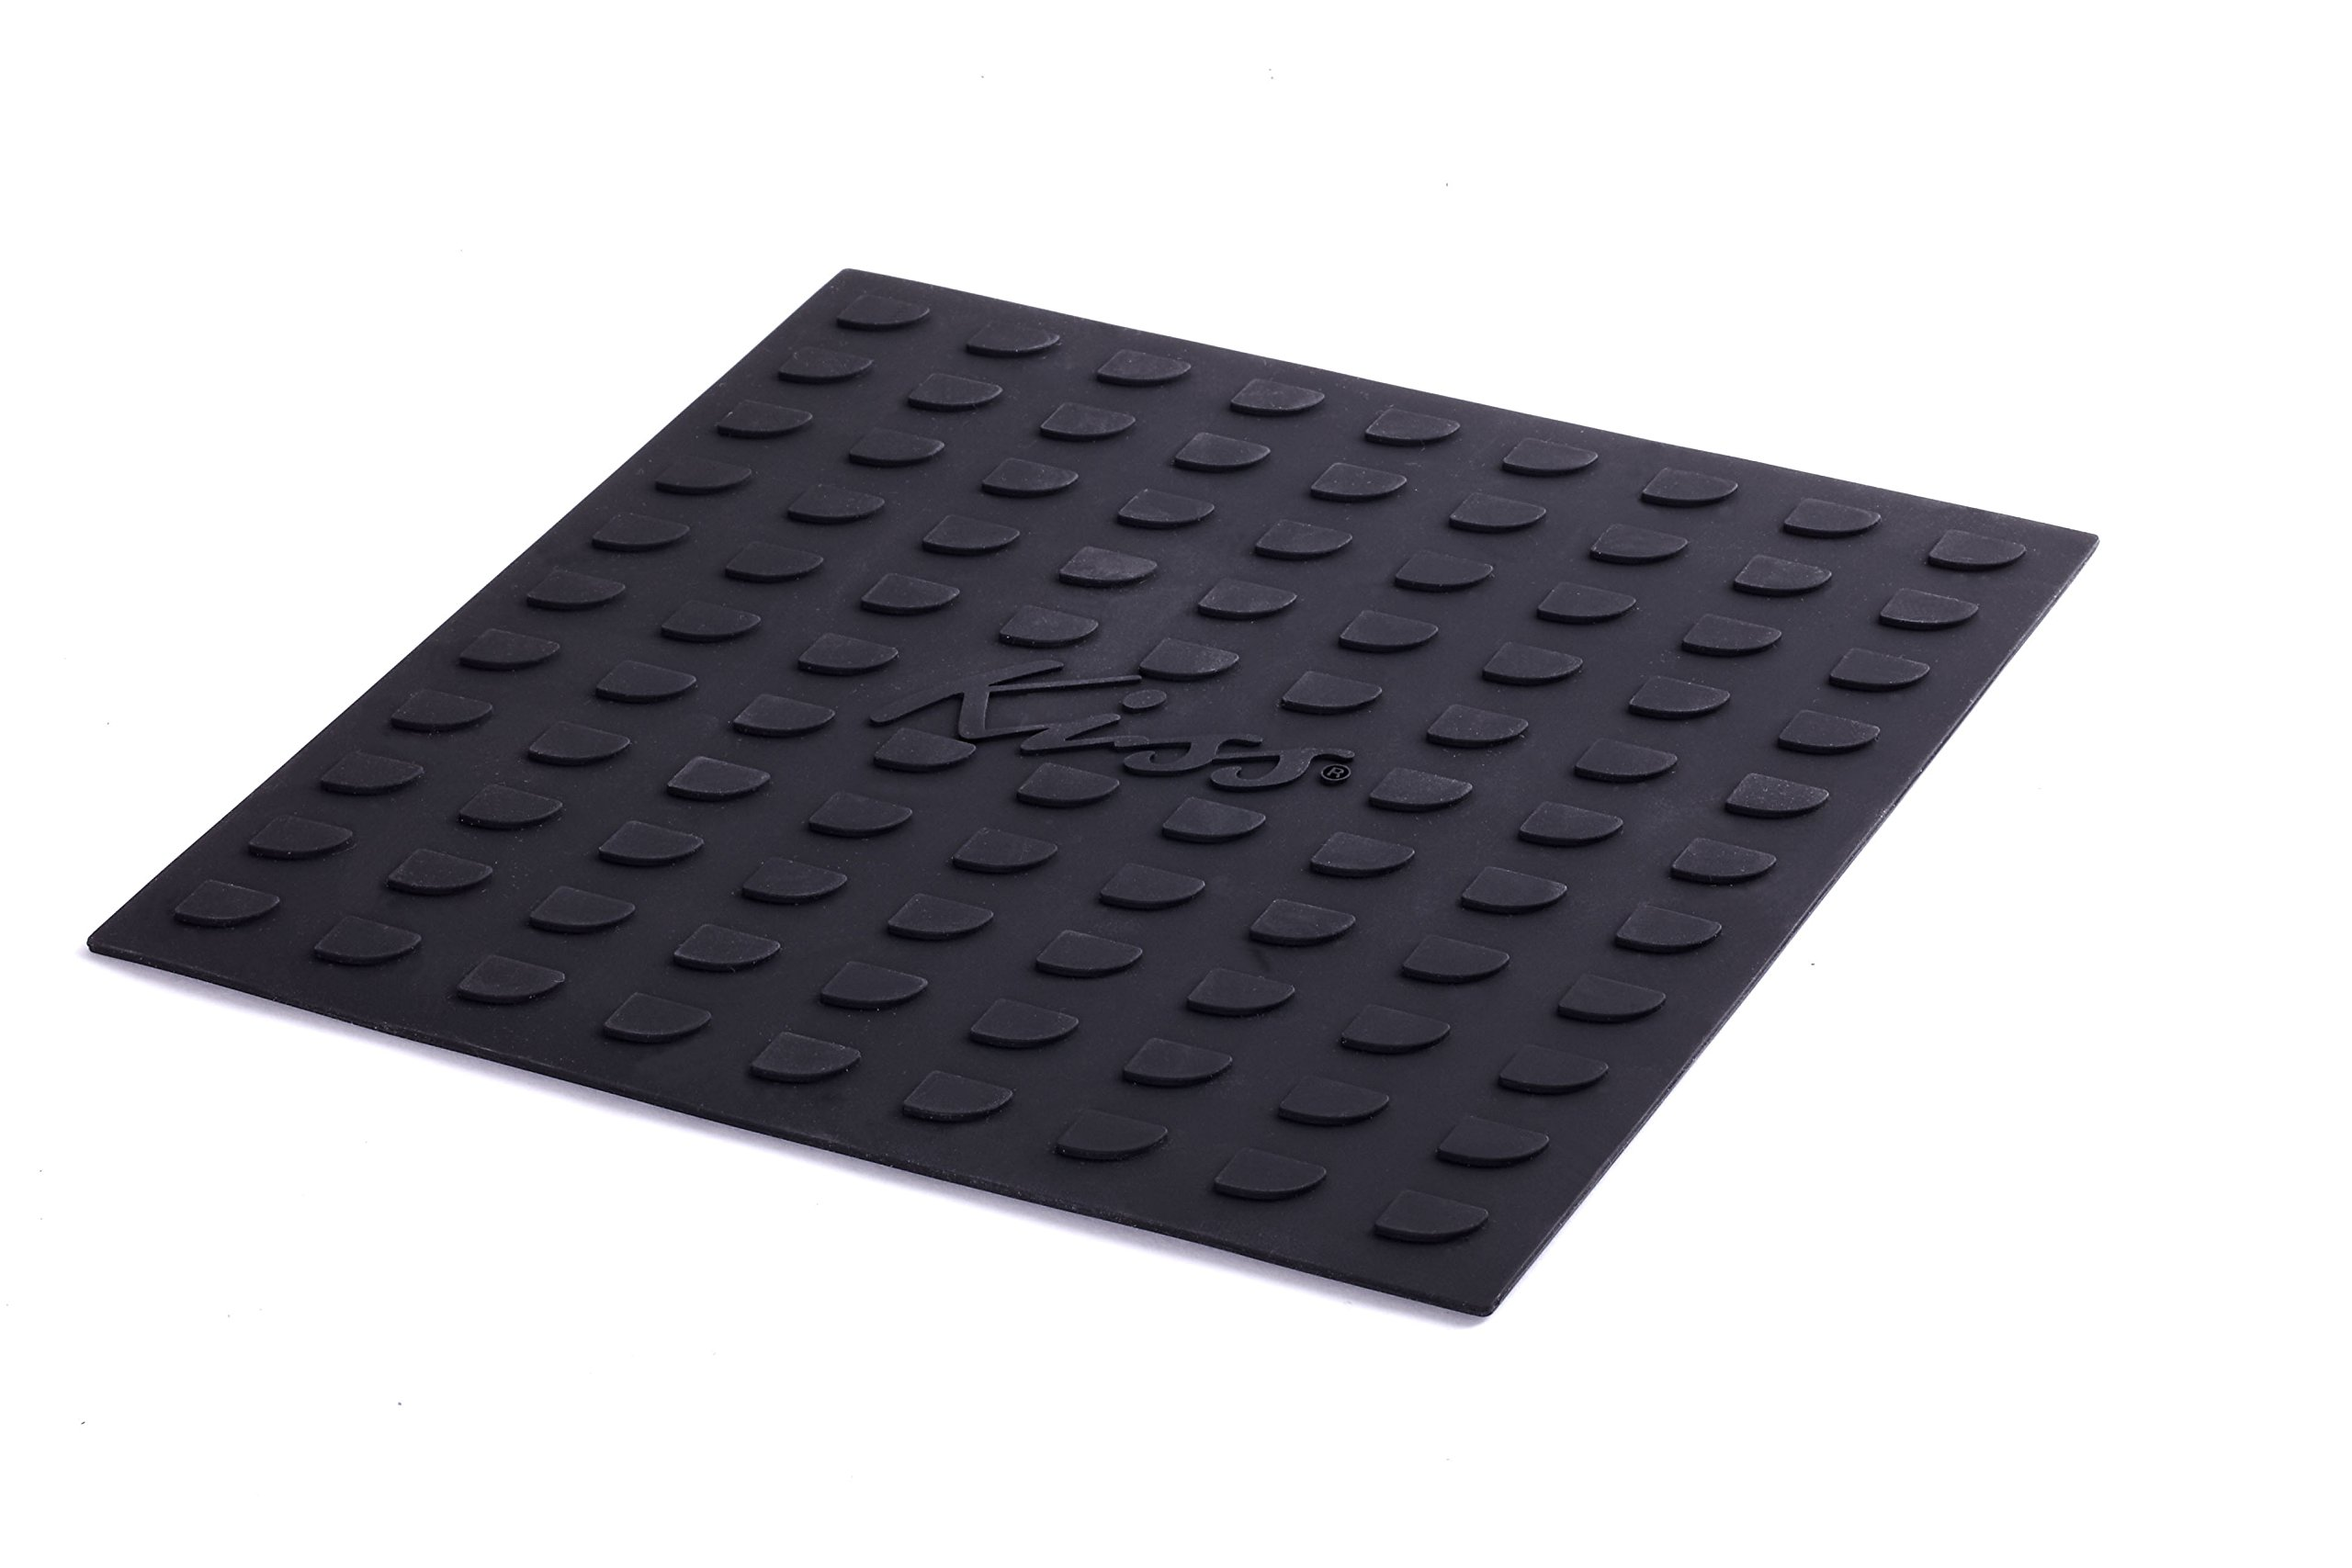 "Kiss Products Heat Resistant Silicone Protexion Mat For All Hair Irons and Hot Styling Tools 10"" x 10"""